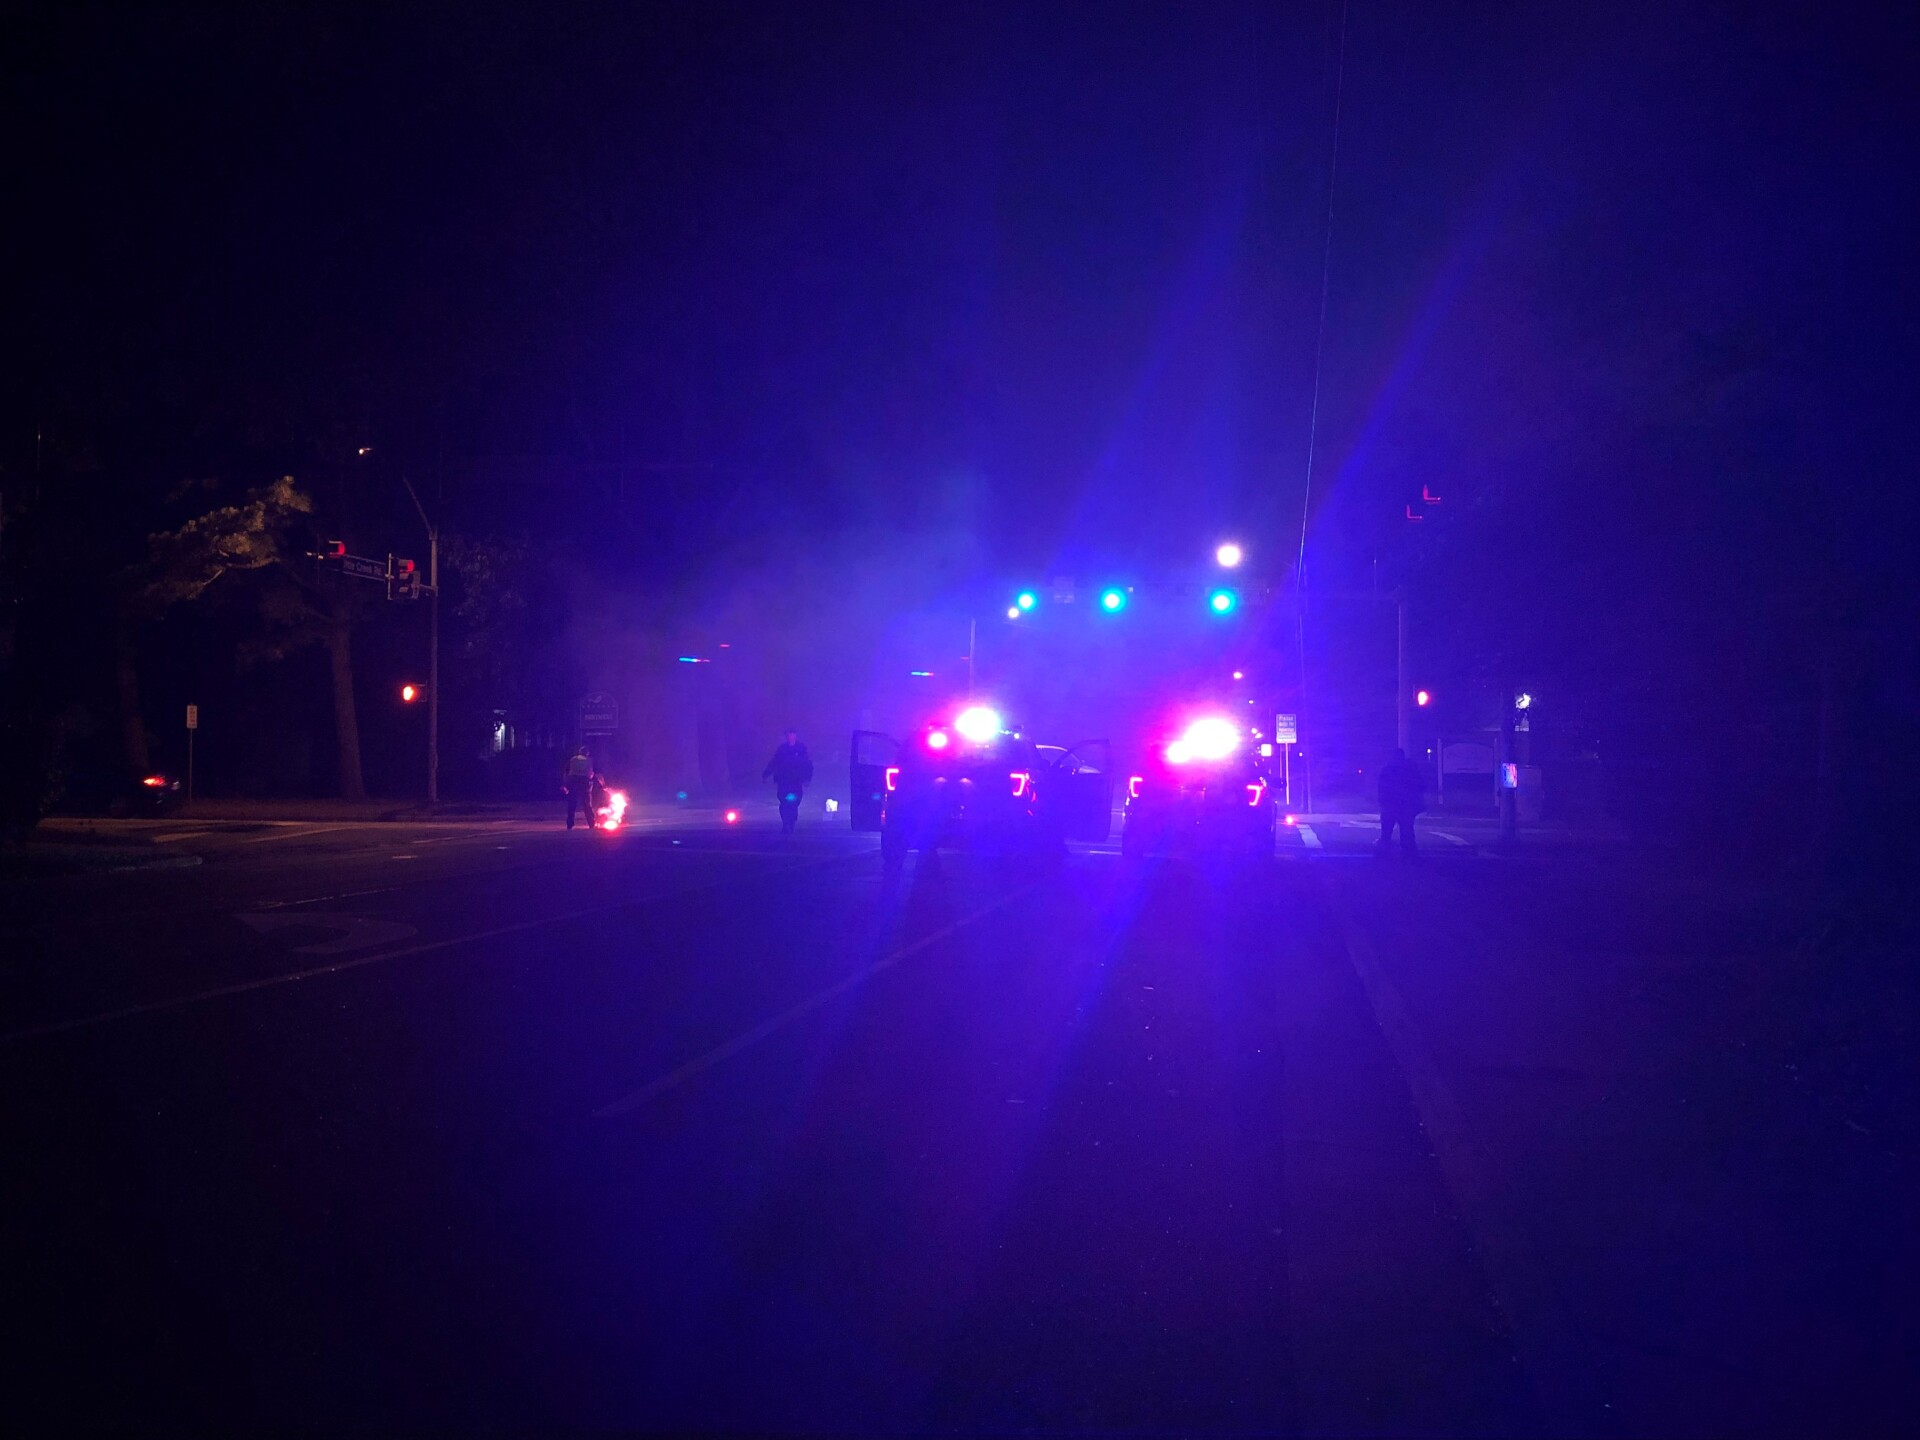 Photos: Woman critically injured after being hit by car inNorfolk